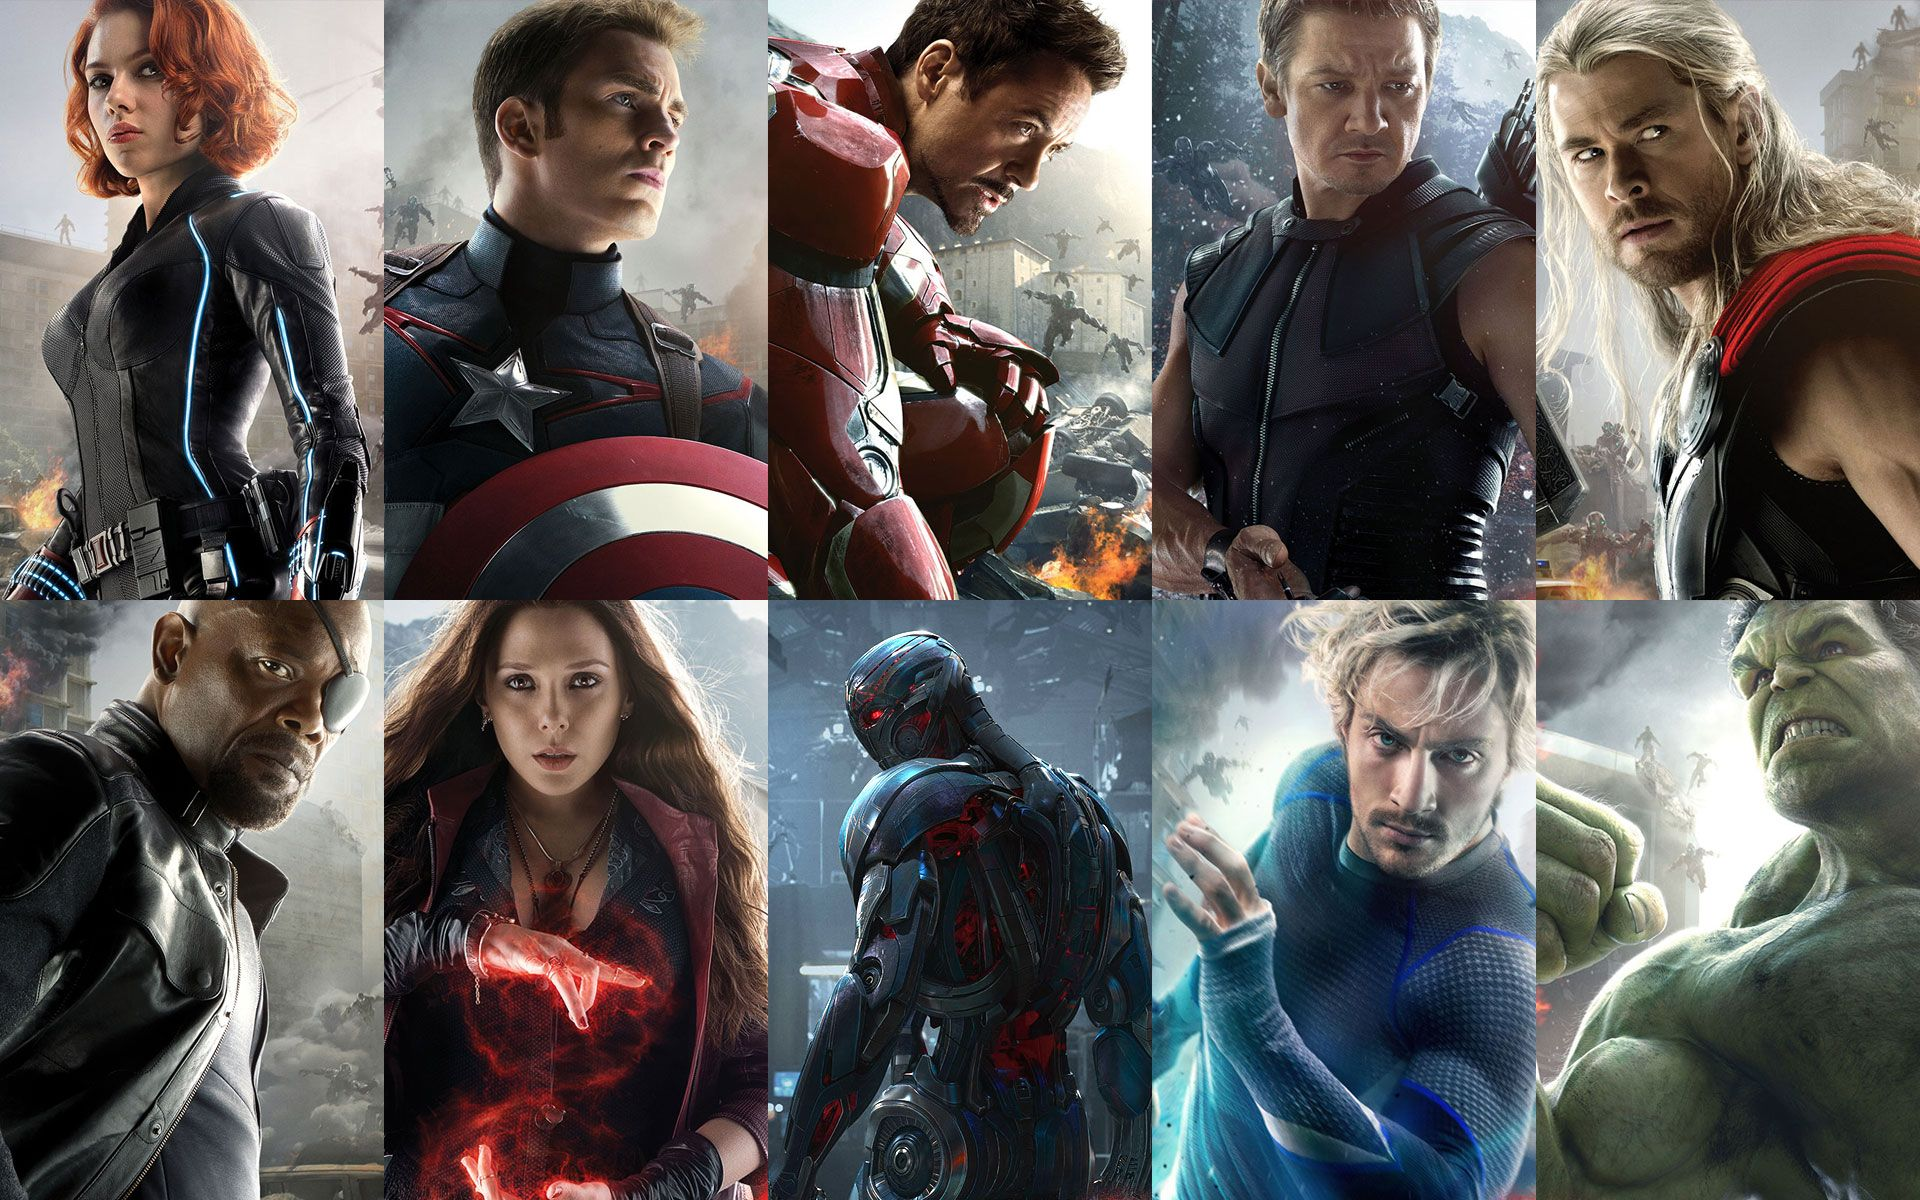 Speaking, avengers age of ultron characters more